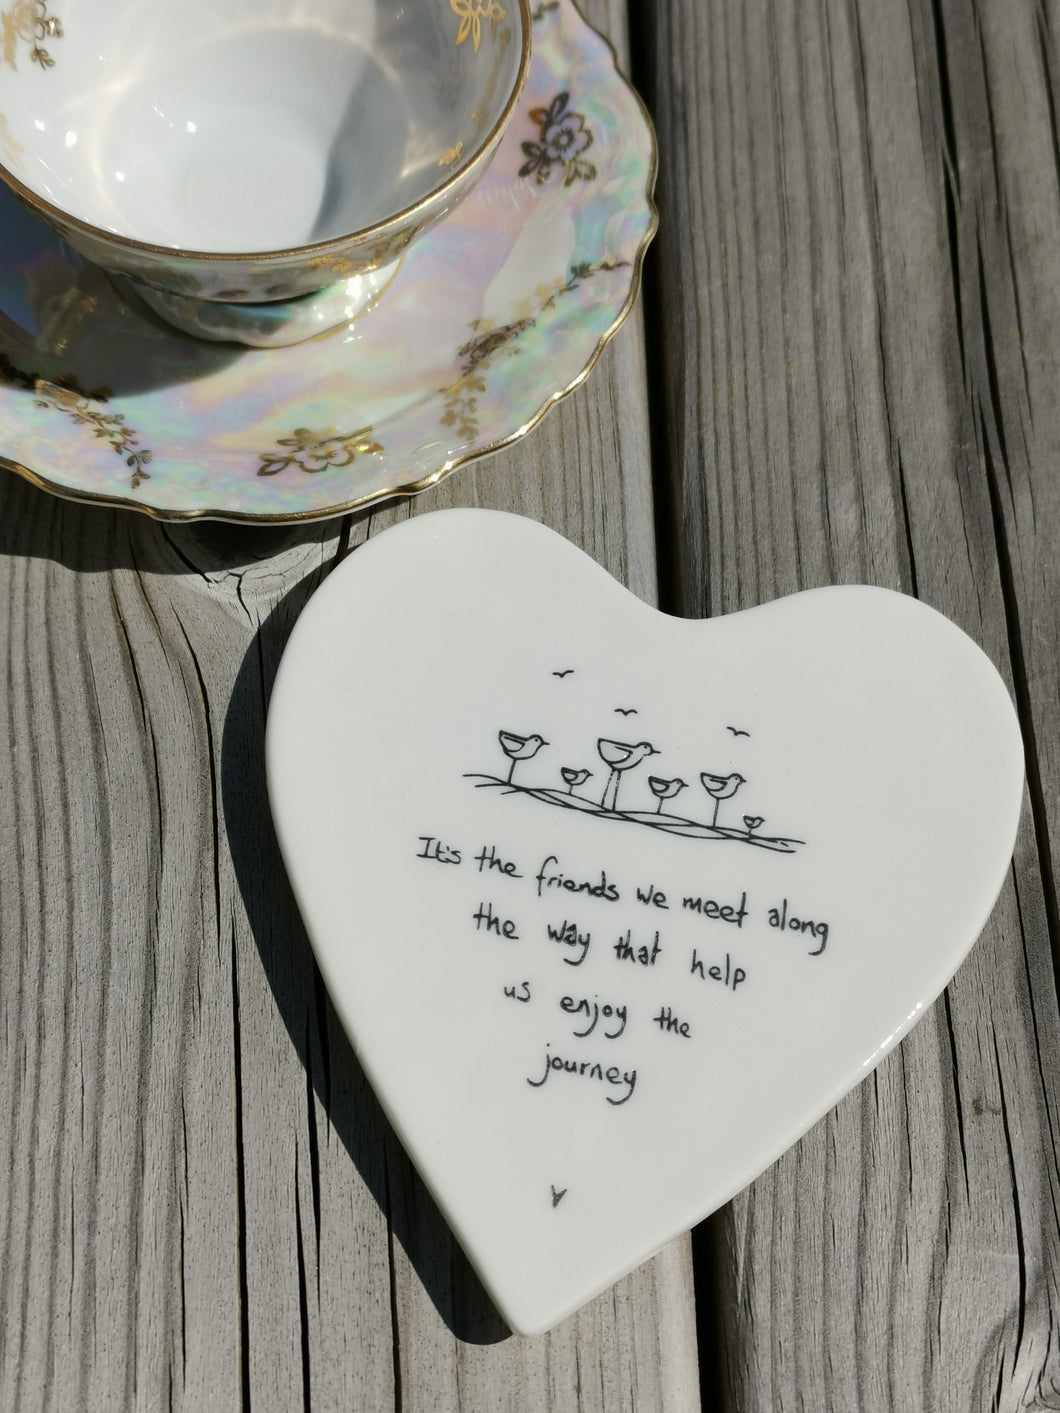 East of India - Porcelain Heart Coaster - It's The Friends We Meet